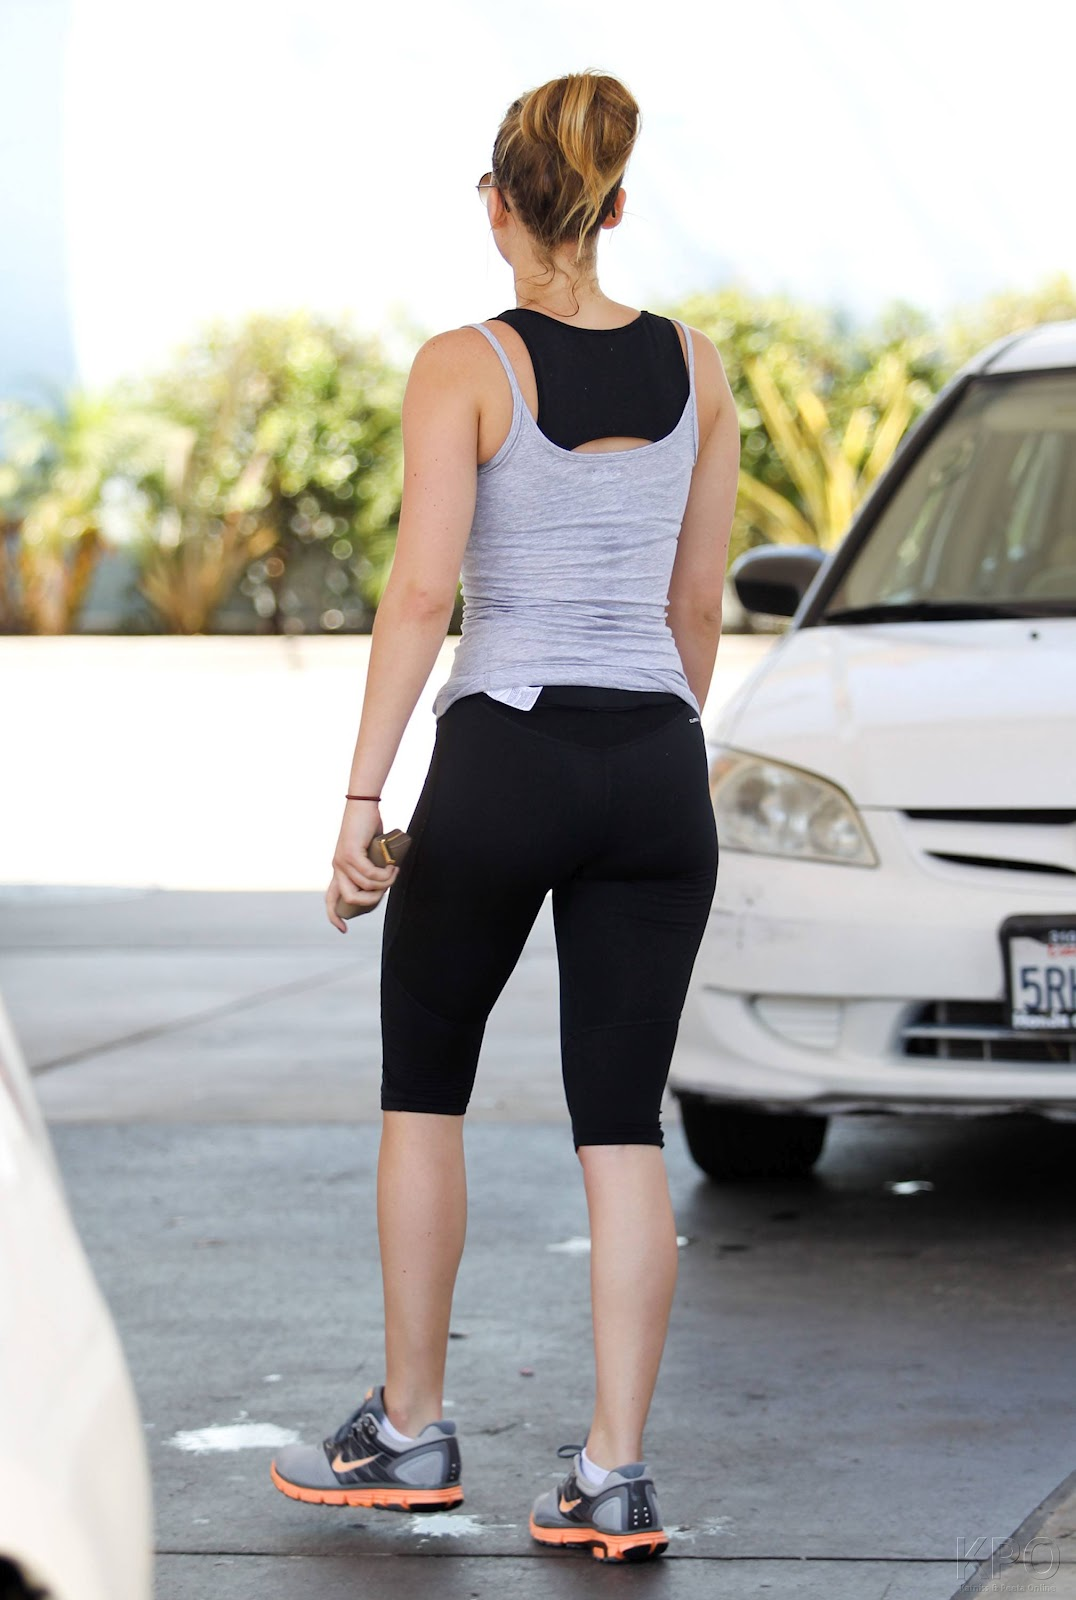 http://4.bp.blogspot.com/-07sVLAhnRAg/UEdaal2NWOI/AAAAAAAAIYo/TpDpOnbVAtE/s1600/jennifer_lawrence_heading_to_the_gym_in_santa_monica_august_13_2012__saZpjKc.jpg